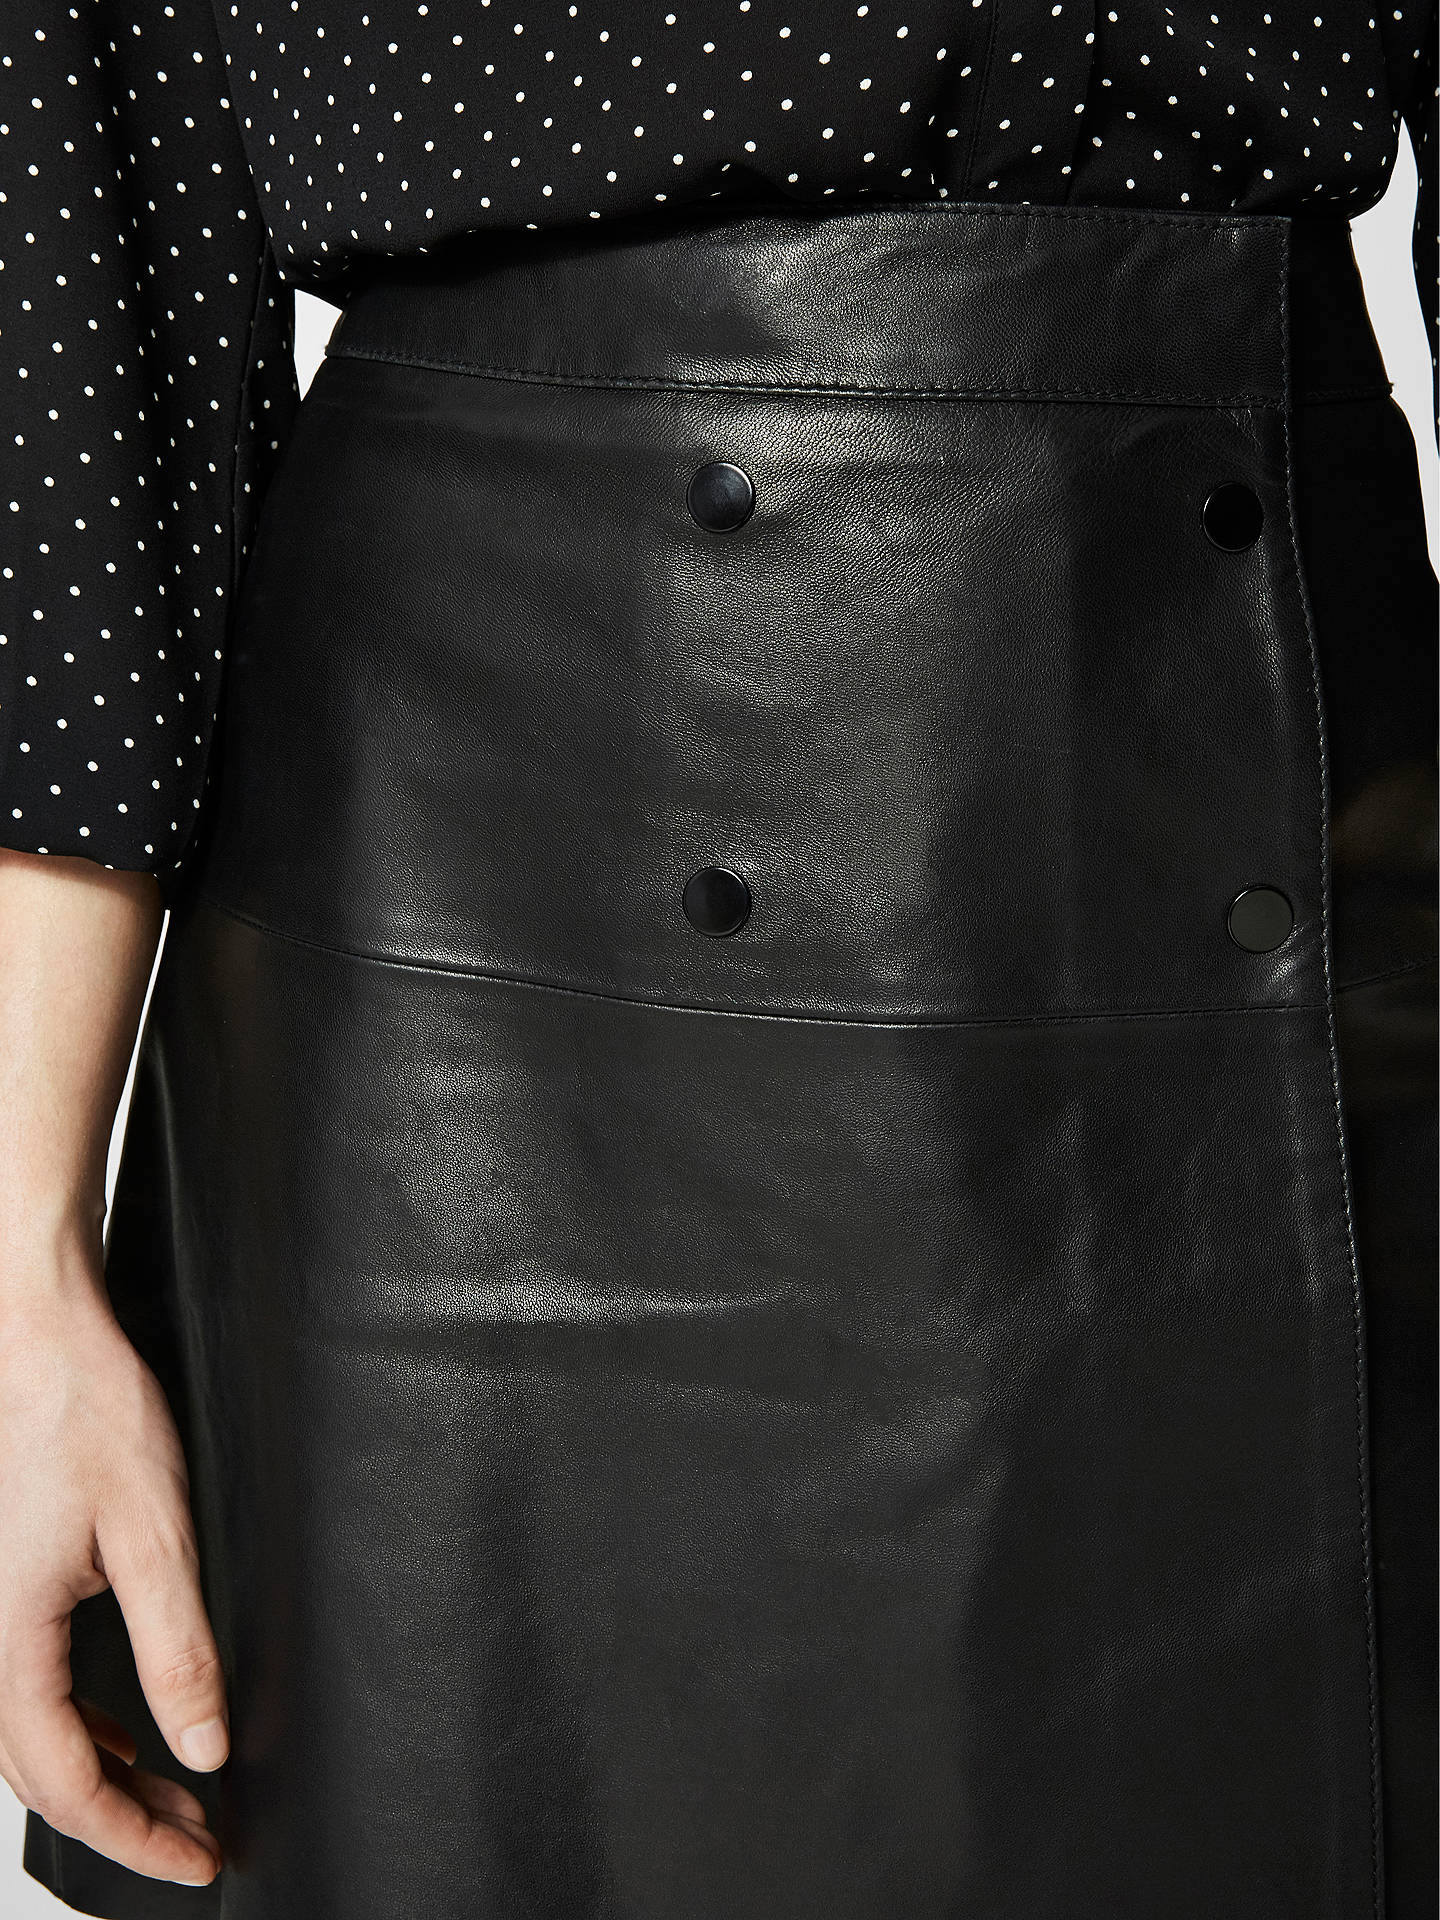 BuySelected Femme Zadig Leather Skirt, Black, 8 Online at johnlewis.com